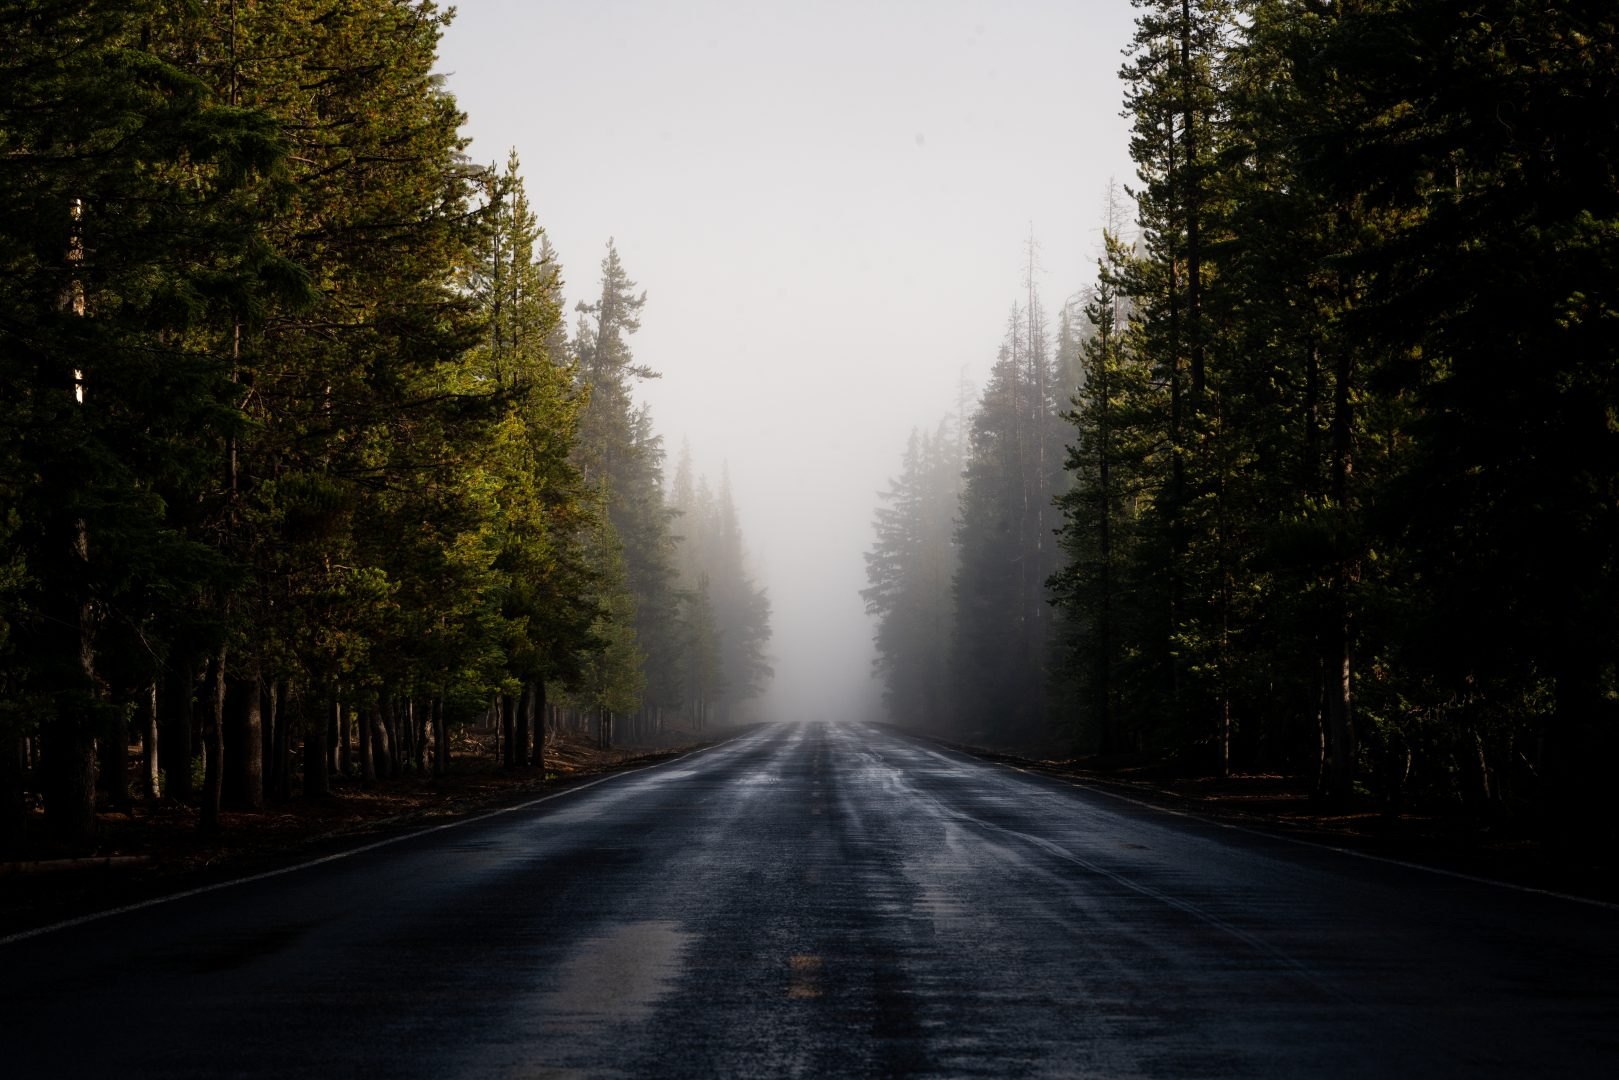 gray asphalt road between green trees during foggy day